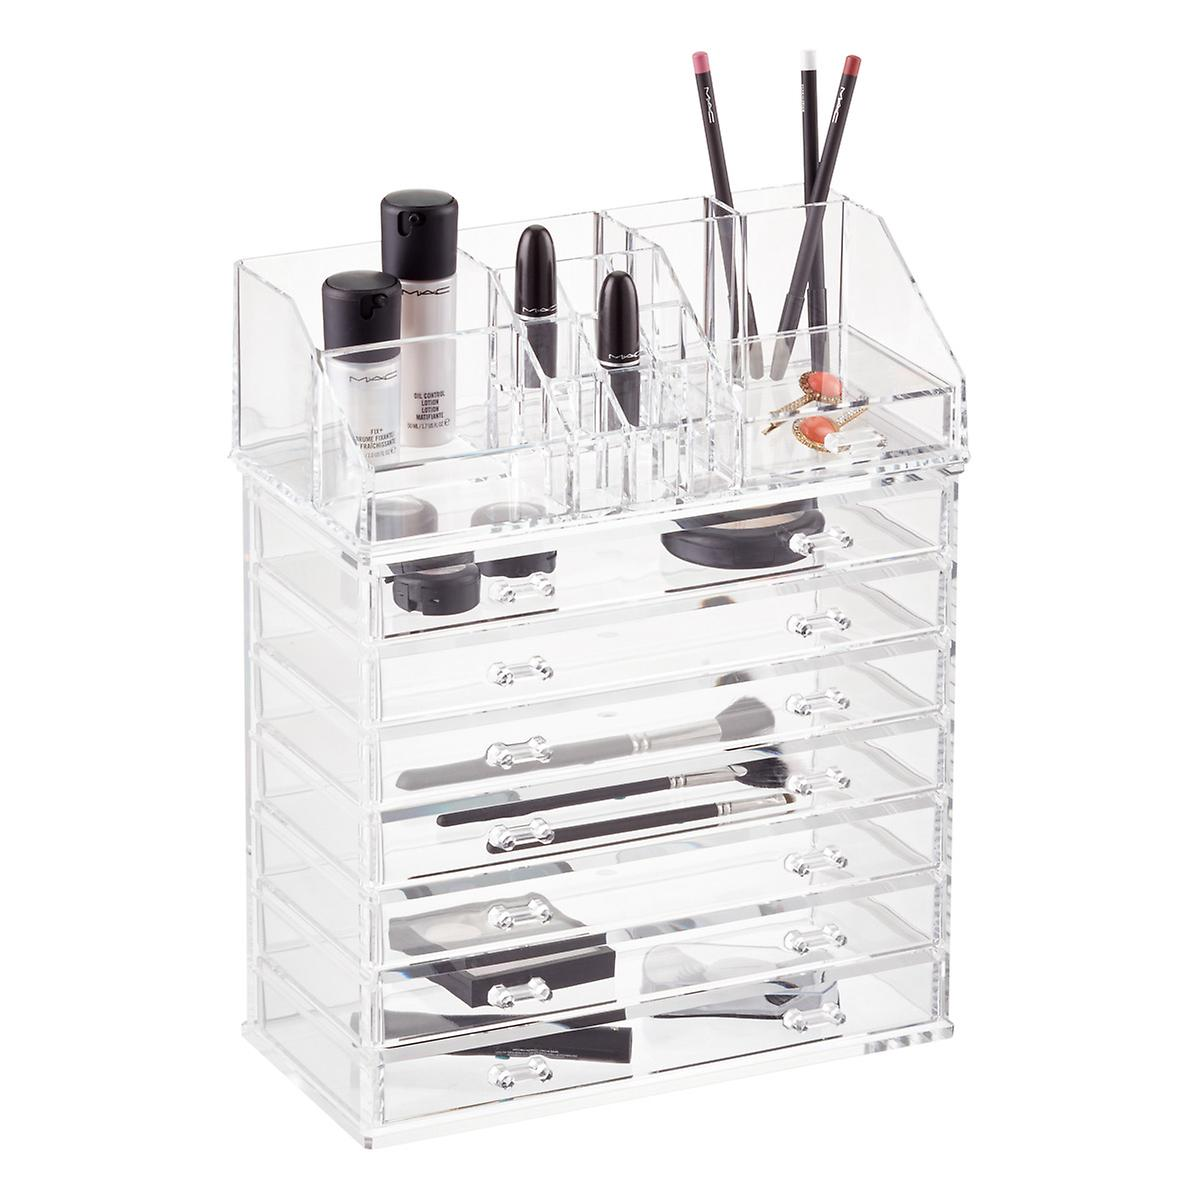 Acrylic Makeup Organizer With Drawer The Container Store - Acrylic makeup organizer